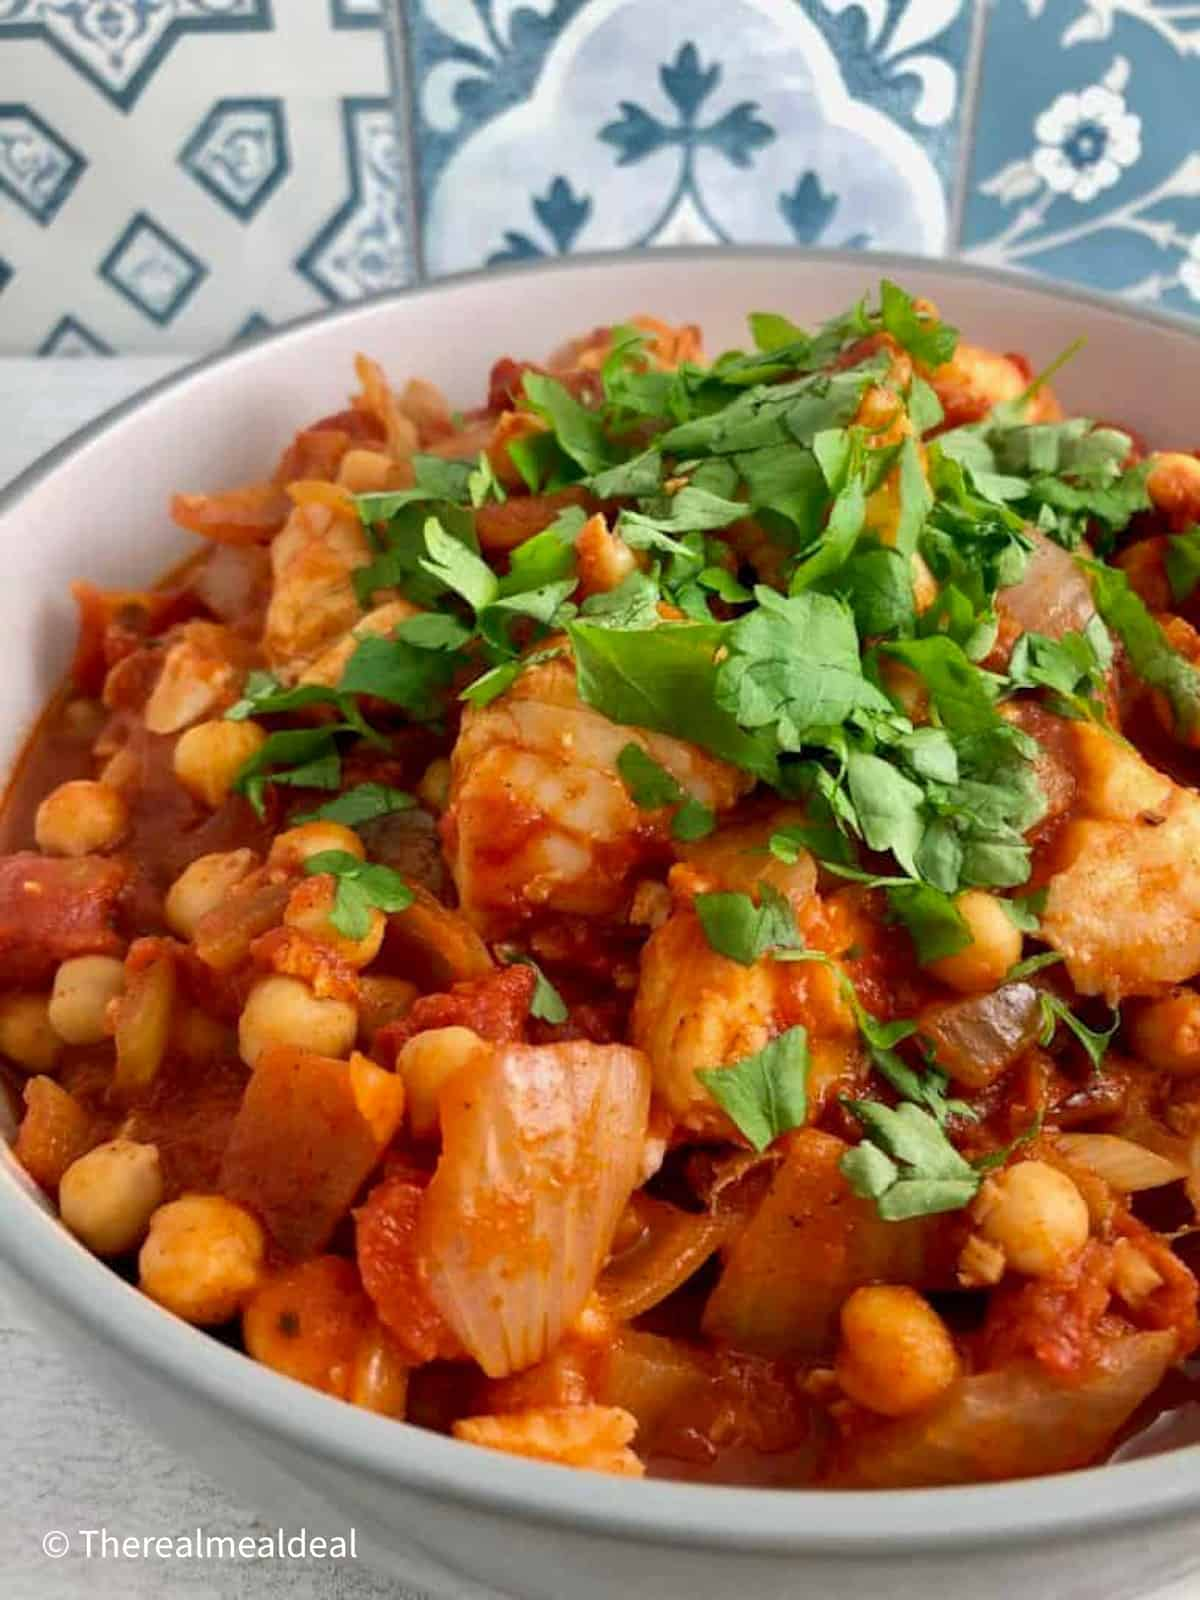 Fish and chickpea stew with sprinkling of fresh parsley